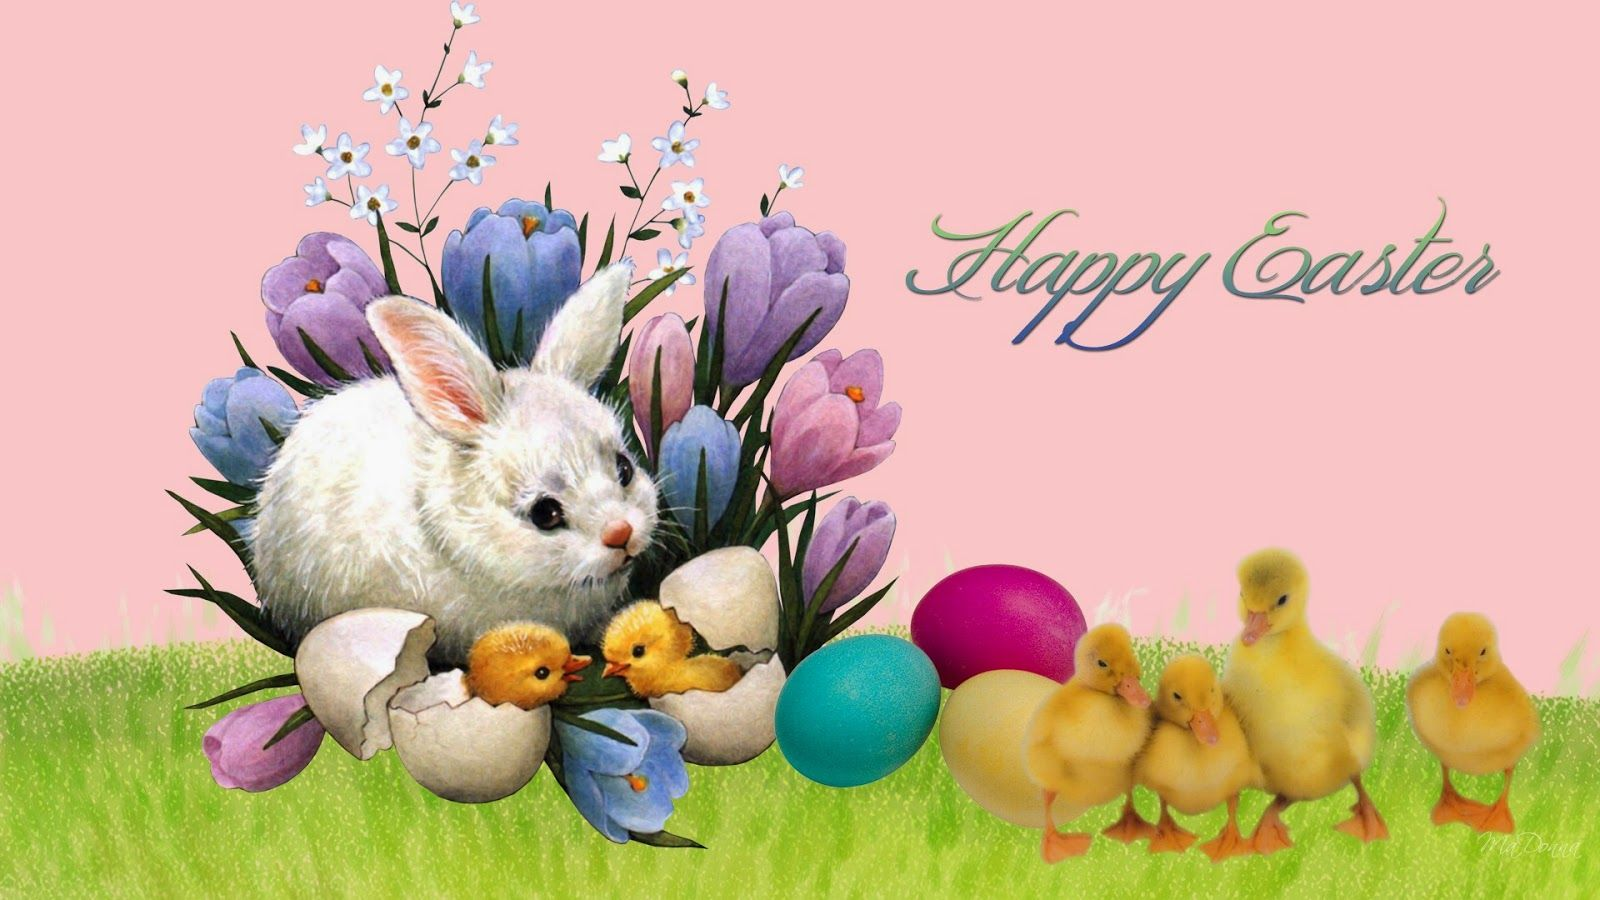 Great Collection of Easter HD Wallpapers, easter quotes, Easter Pics, Easter Photos, Easter Desktop Background, Easter Images, Easter Greetings, Easter Cards, easter Wishes, Recipes